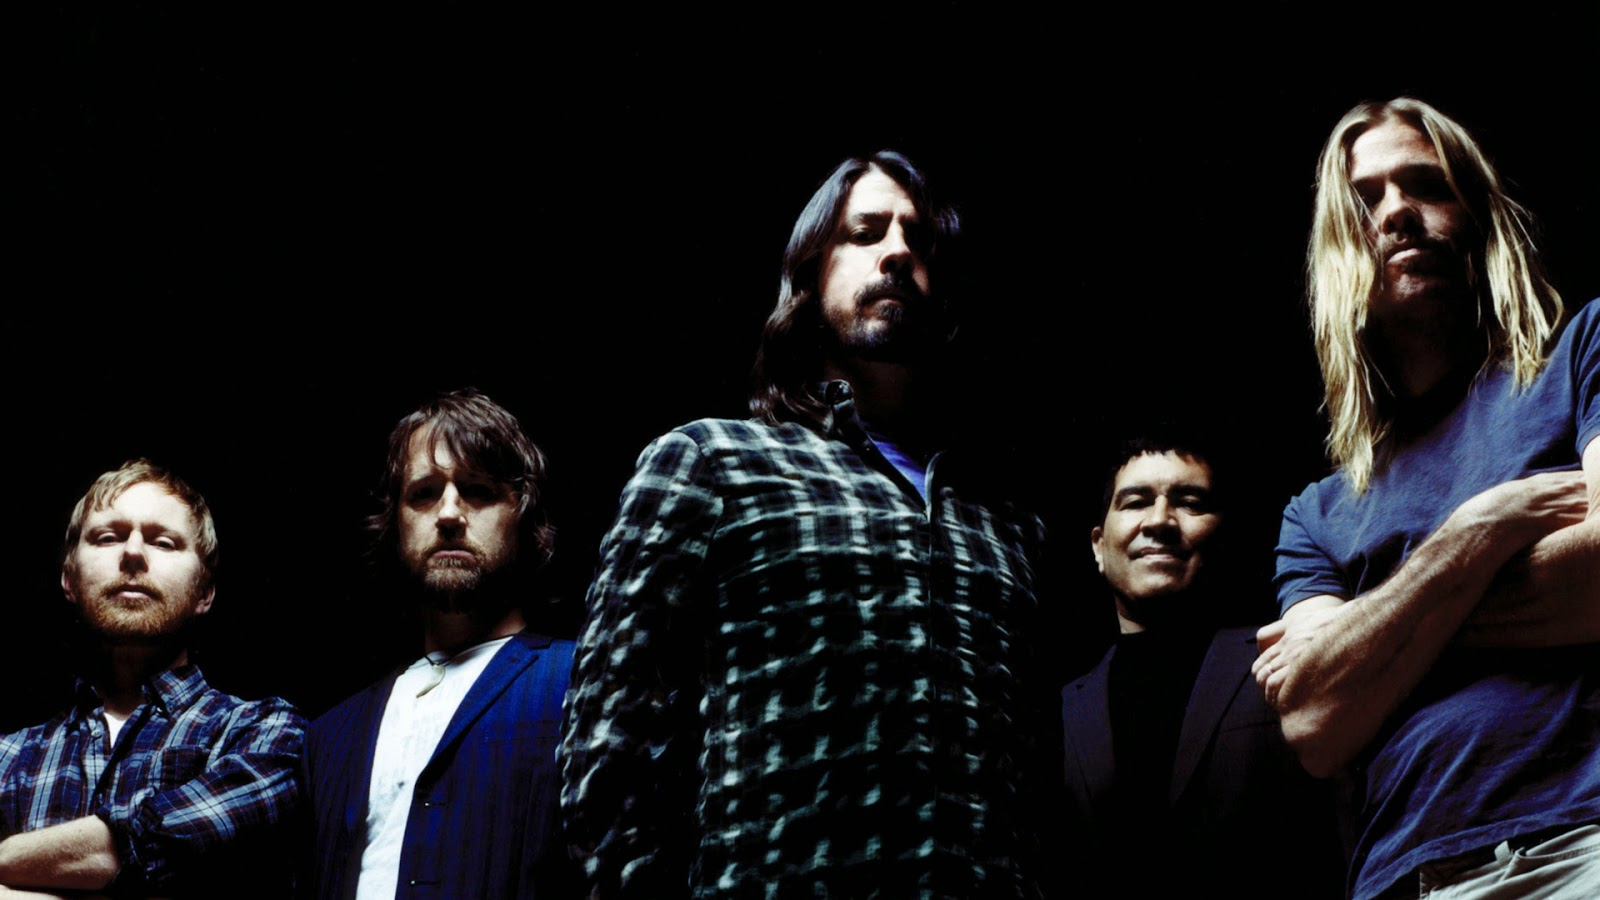 Foo Fighters – What Did I Do?/God As My Witness (Lyrics)